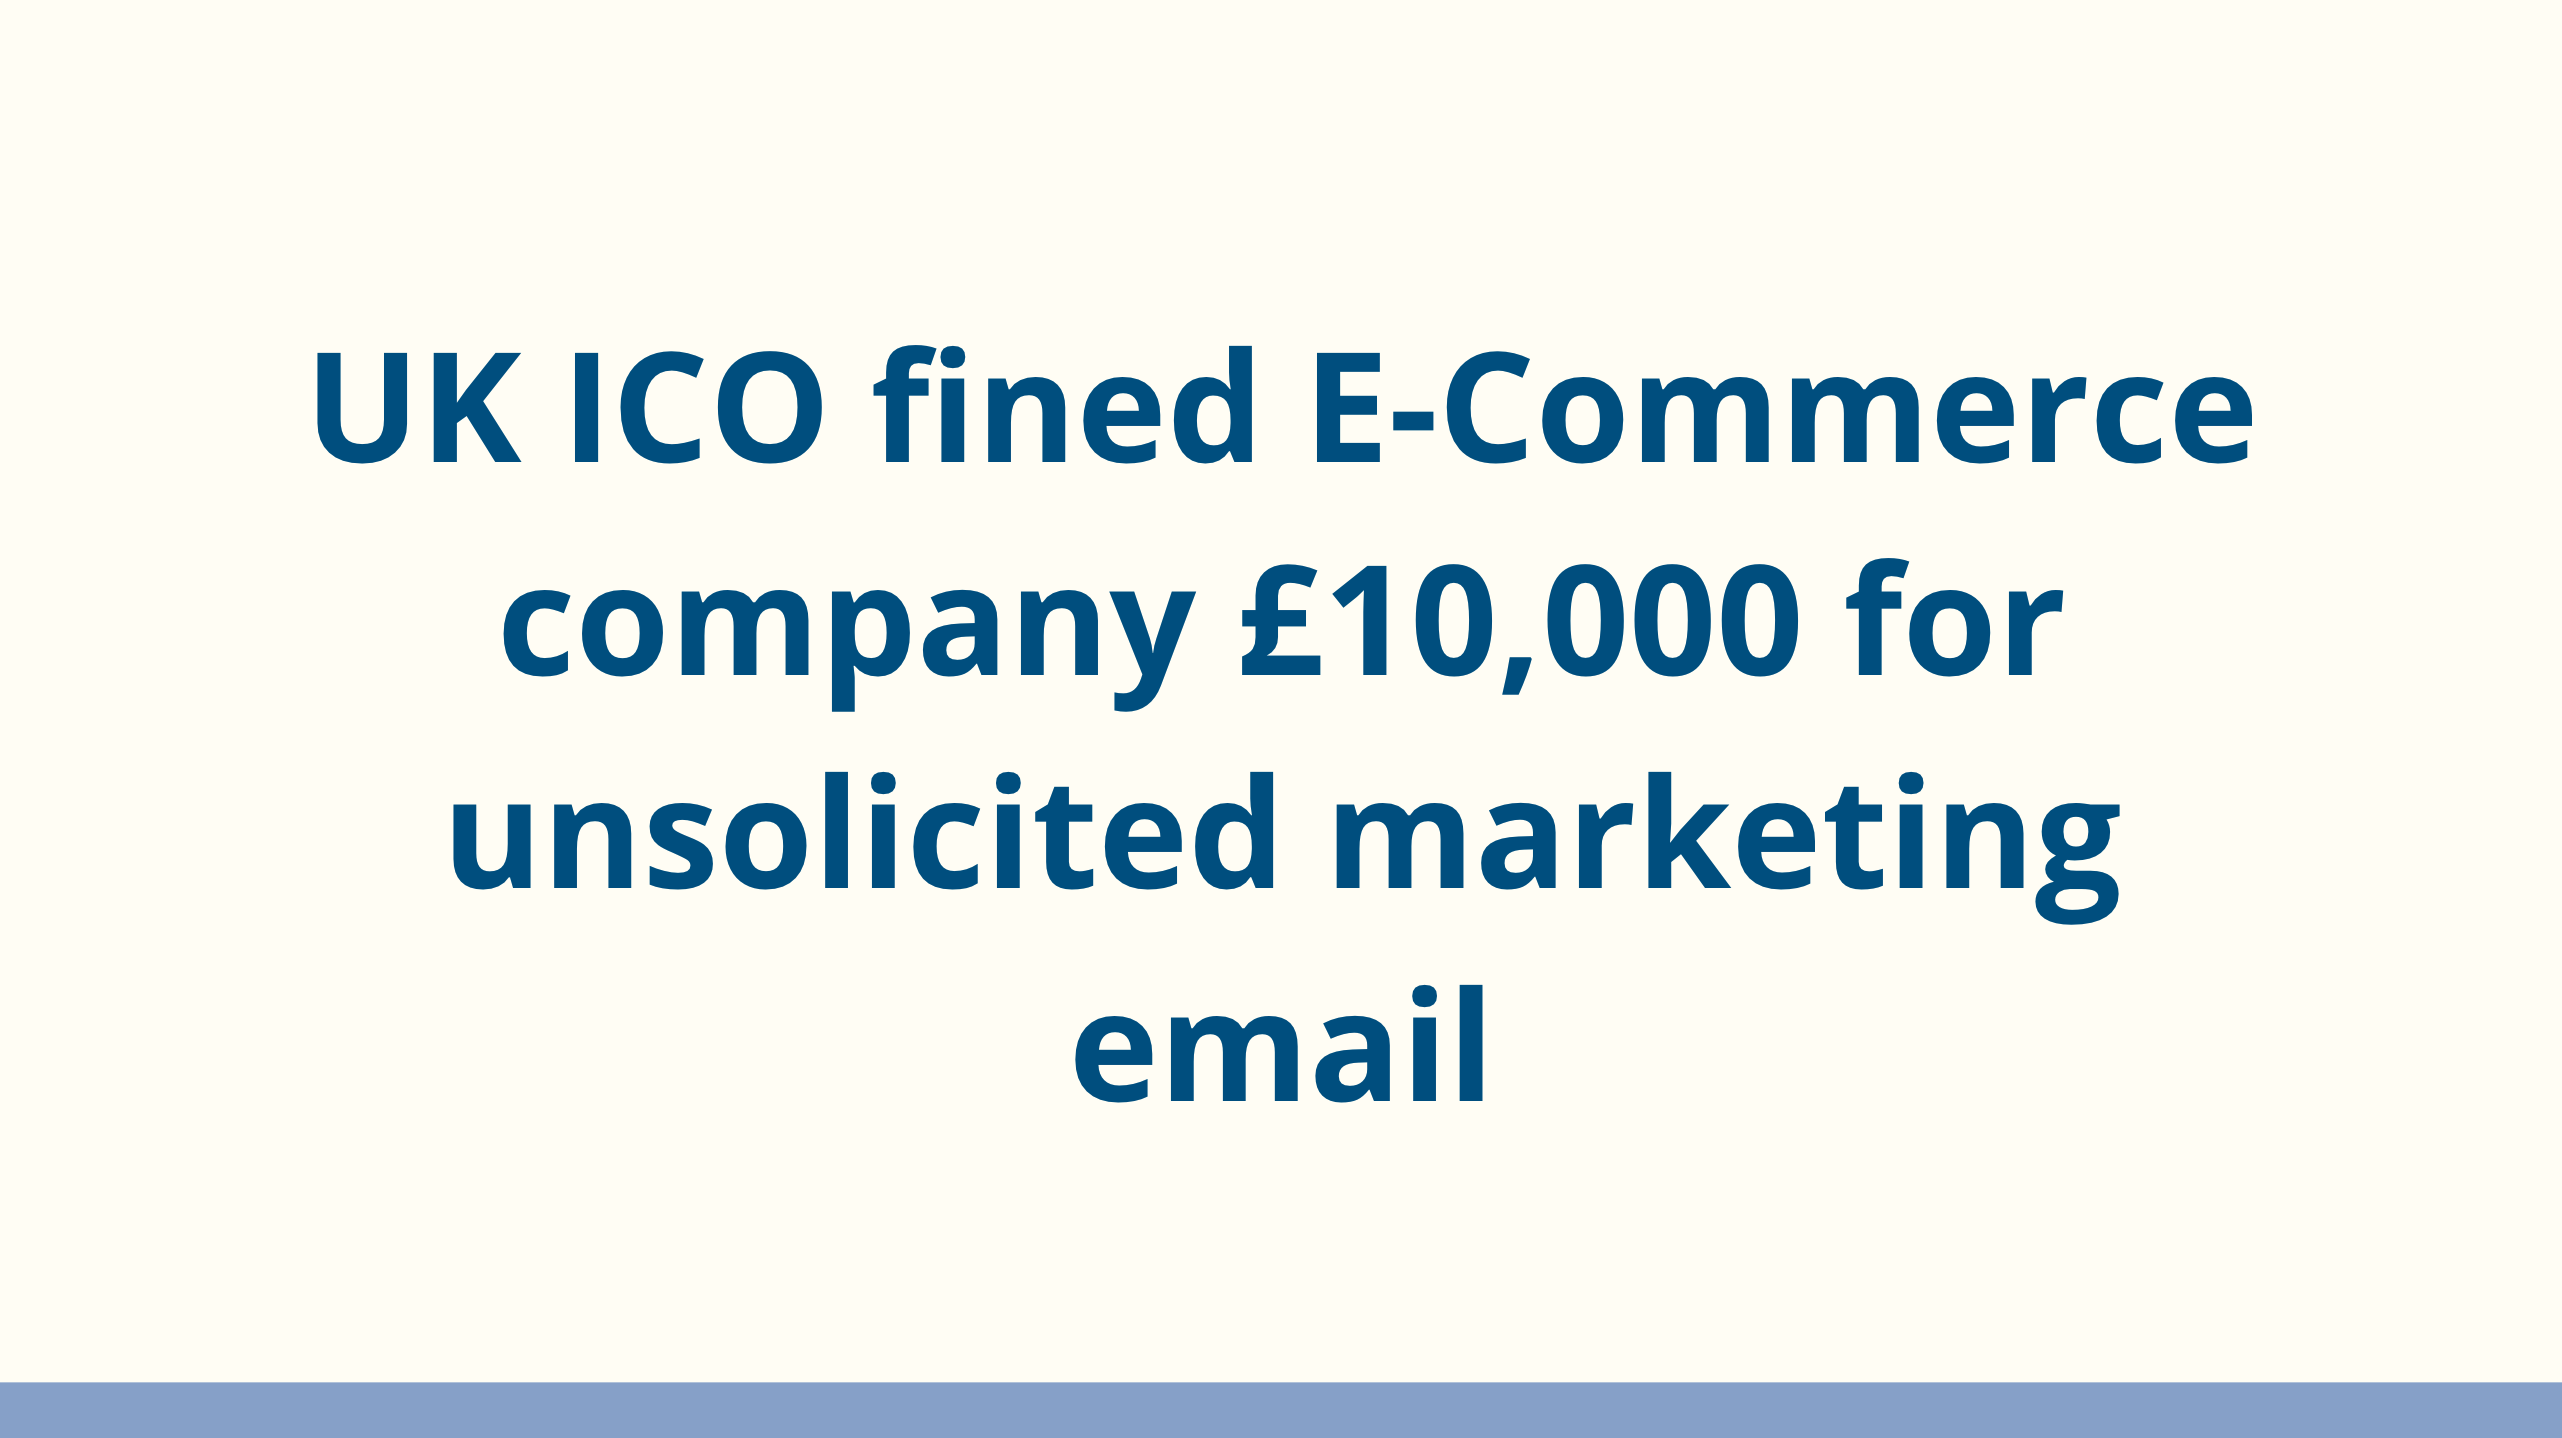 UK ICO fined E-Commerce company £10,000 for unsolicited marketing emails